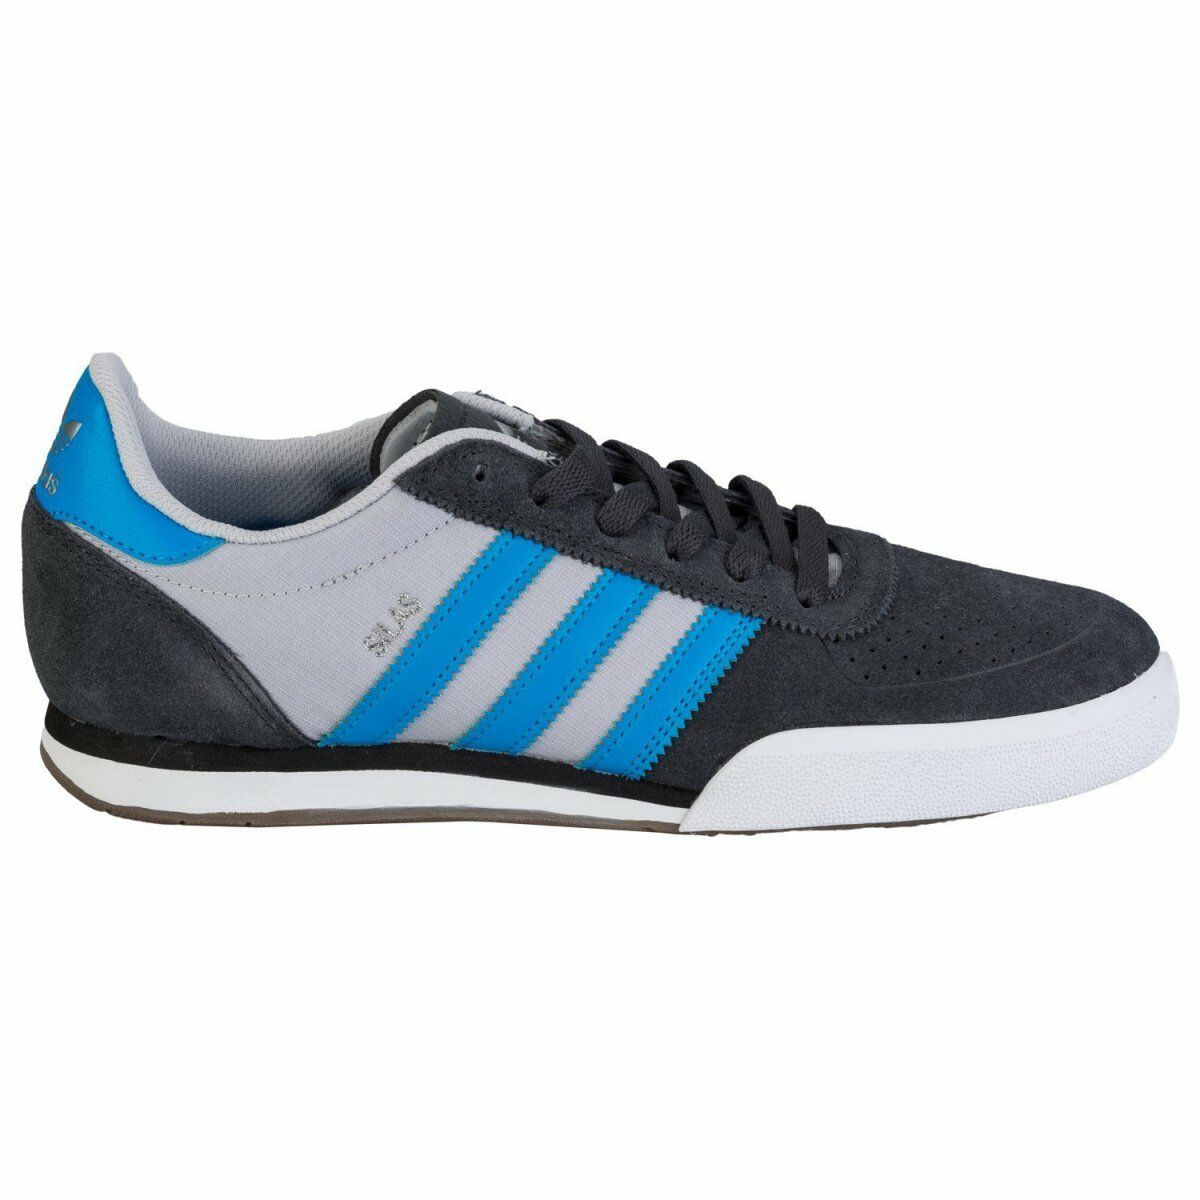 ADIDAS ORIGINALS SILAS SLR Men shoes Sneakers Athletic Trainers C75704